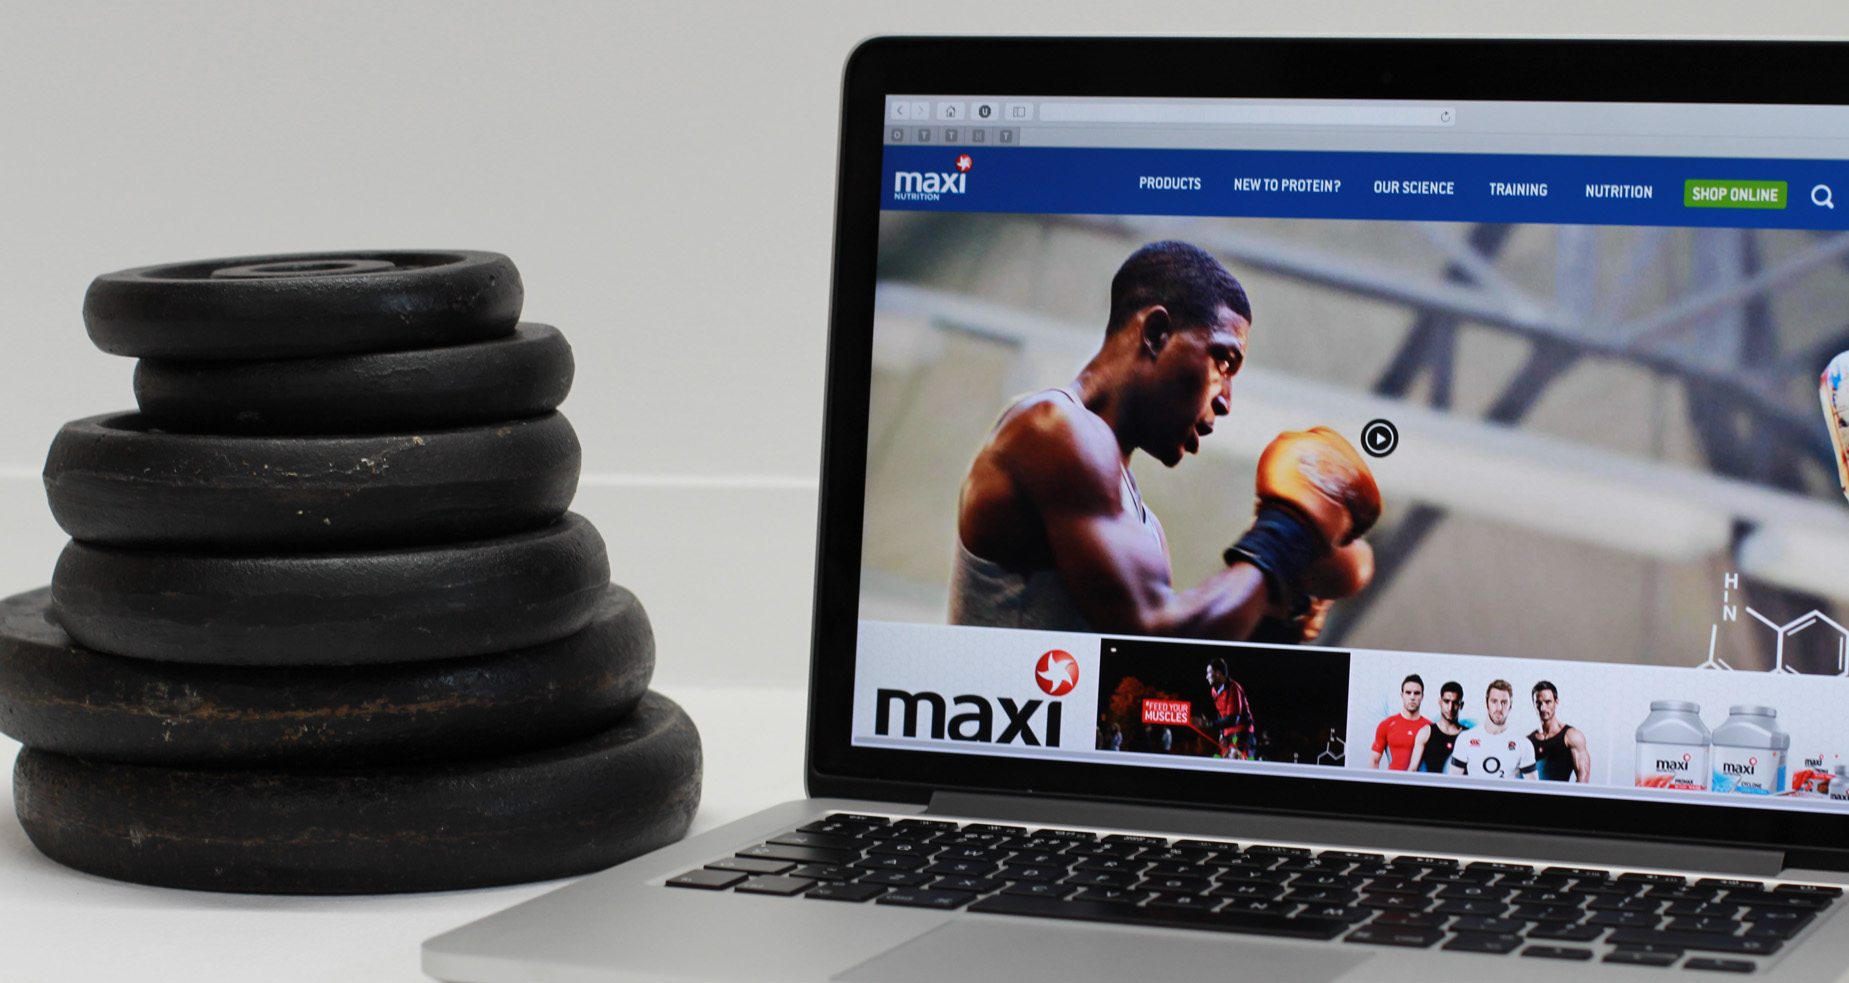 MaxiNutrition responsive website on a MacBook next to a stack of weights